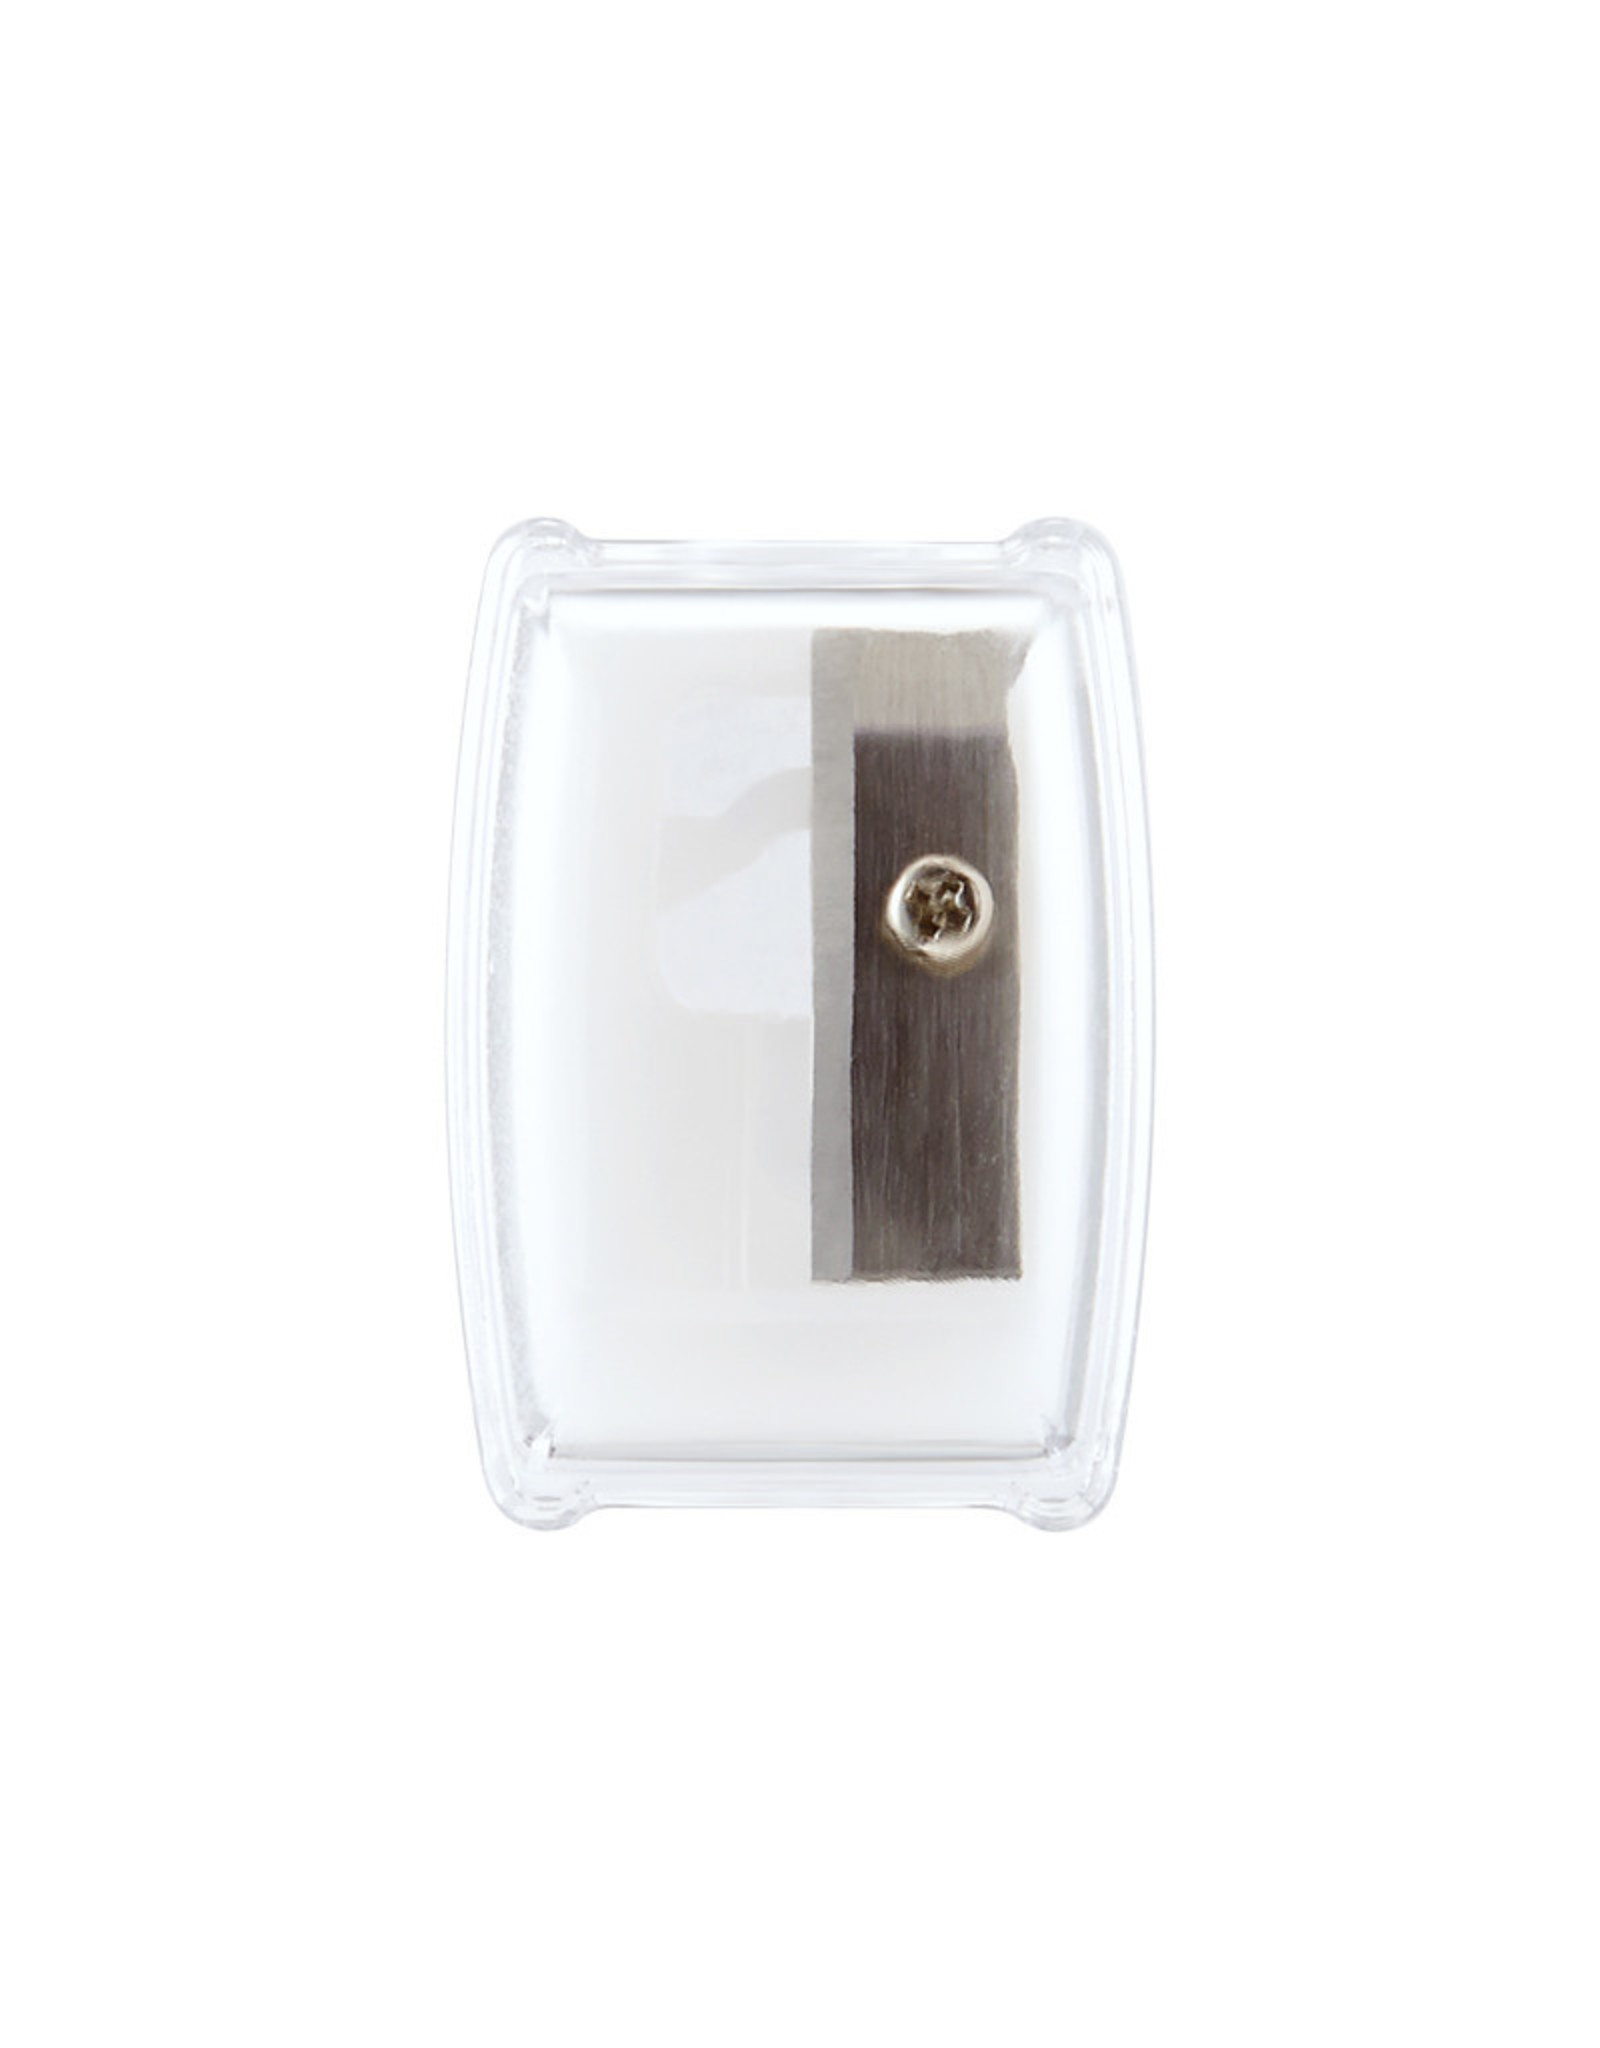 Beauty Tool Pencil Sharpener